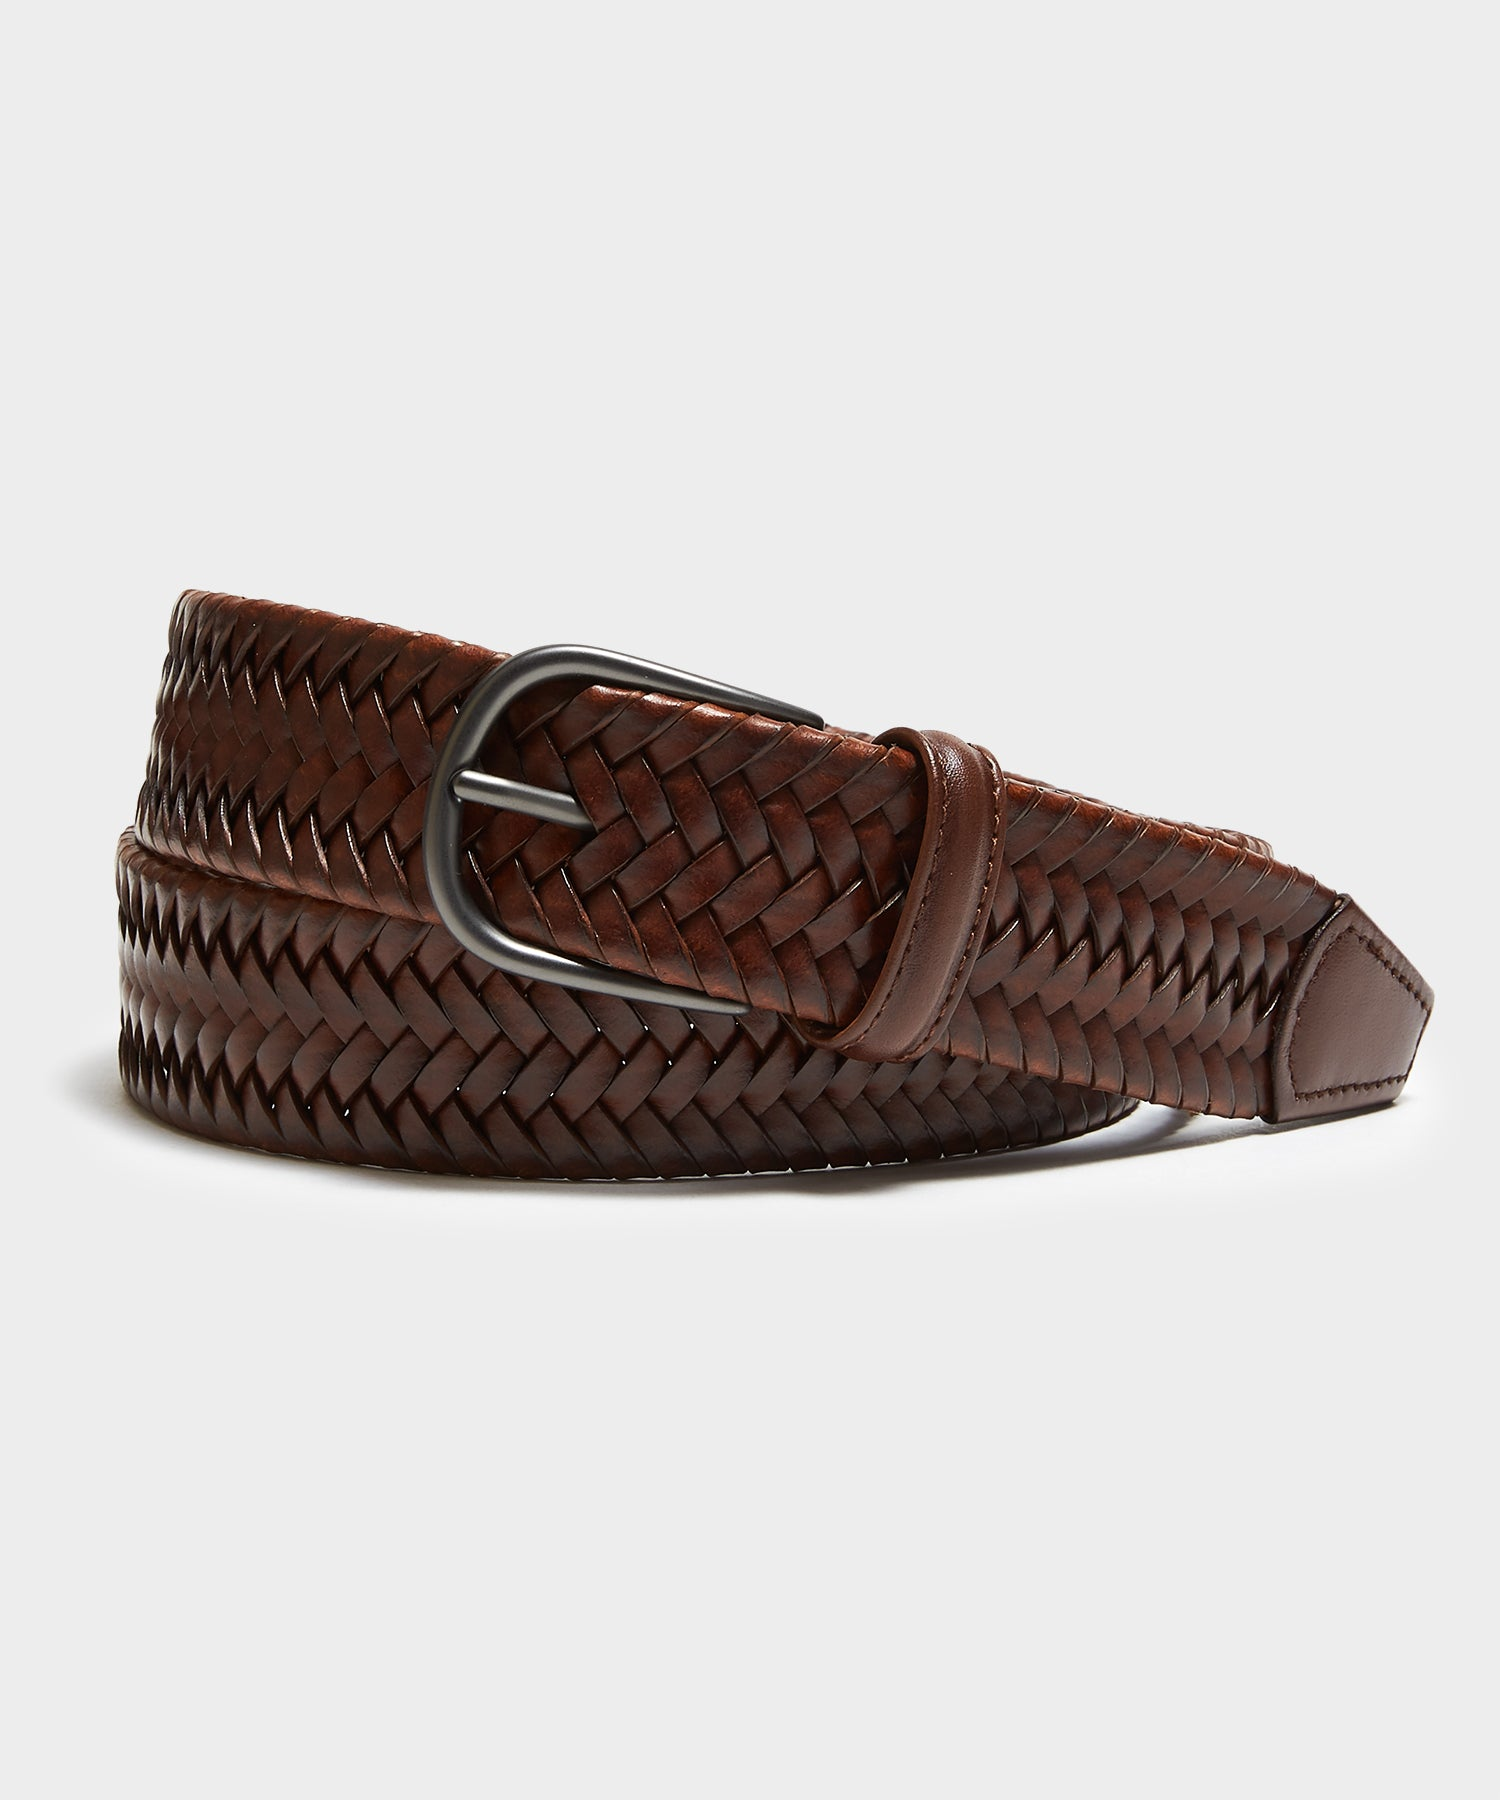 Anderson's Braided Leather Stretch Belt in Dark Brown